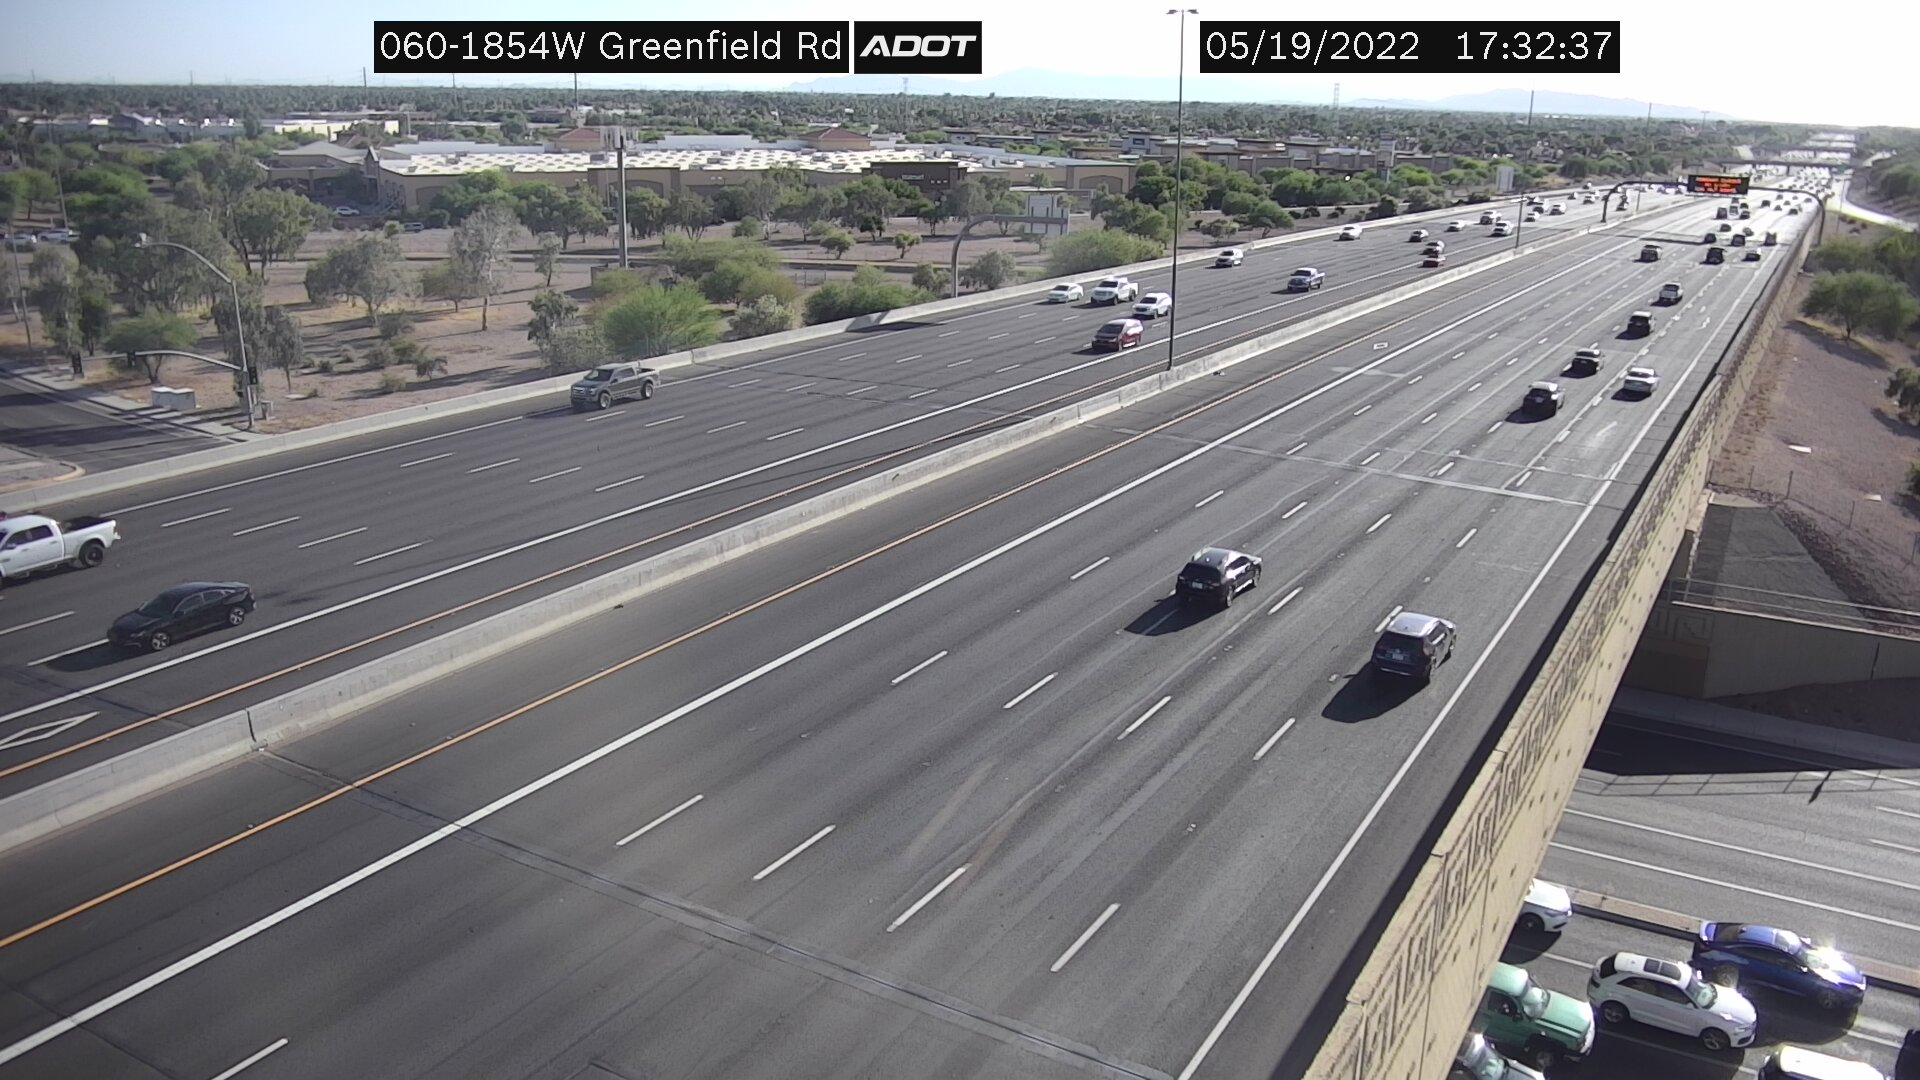 Greenfield WB (US60) (187) - Phoenix and Arizona